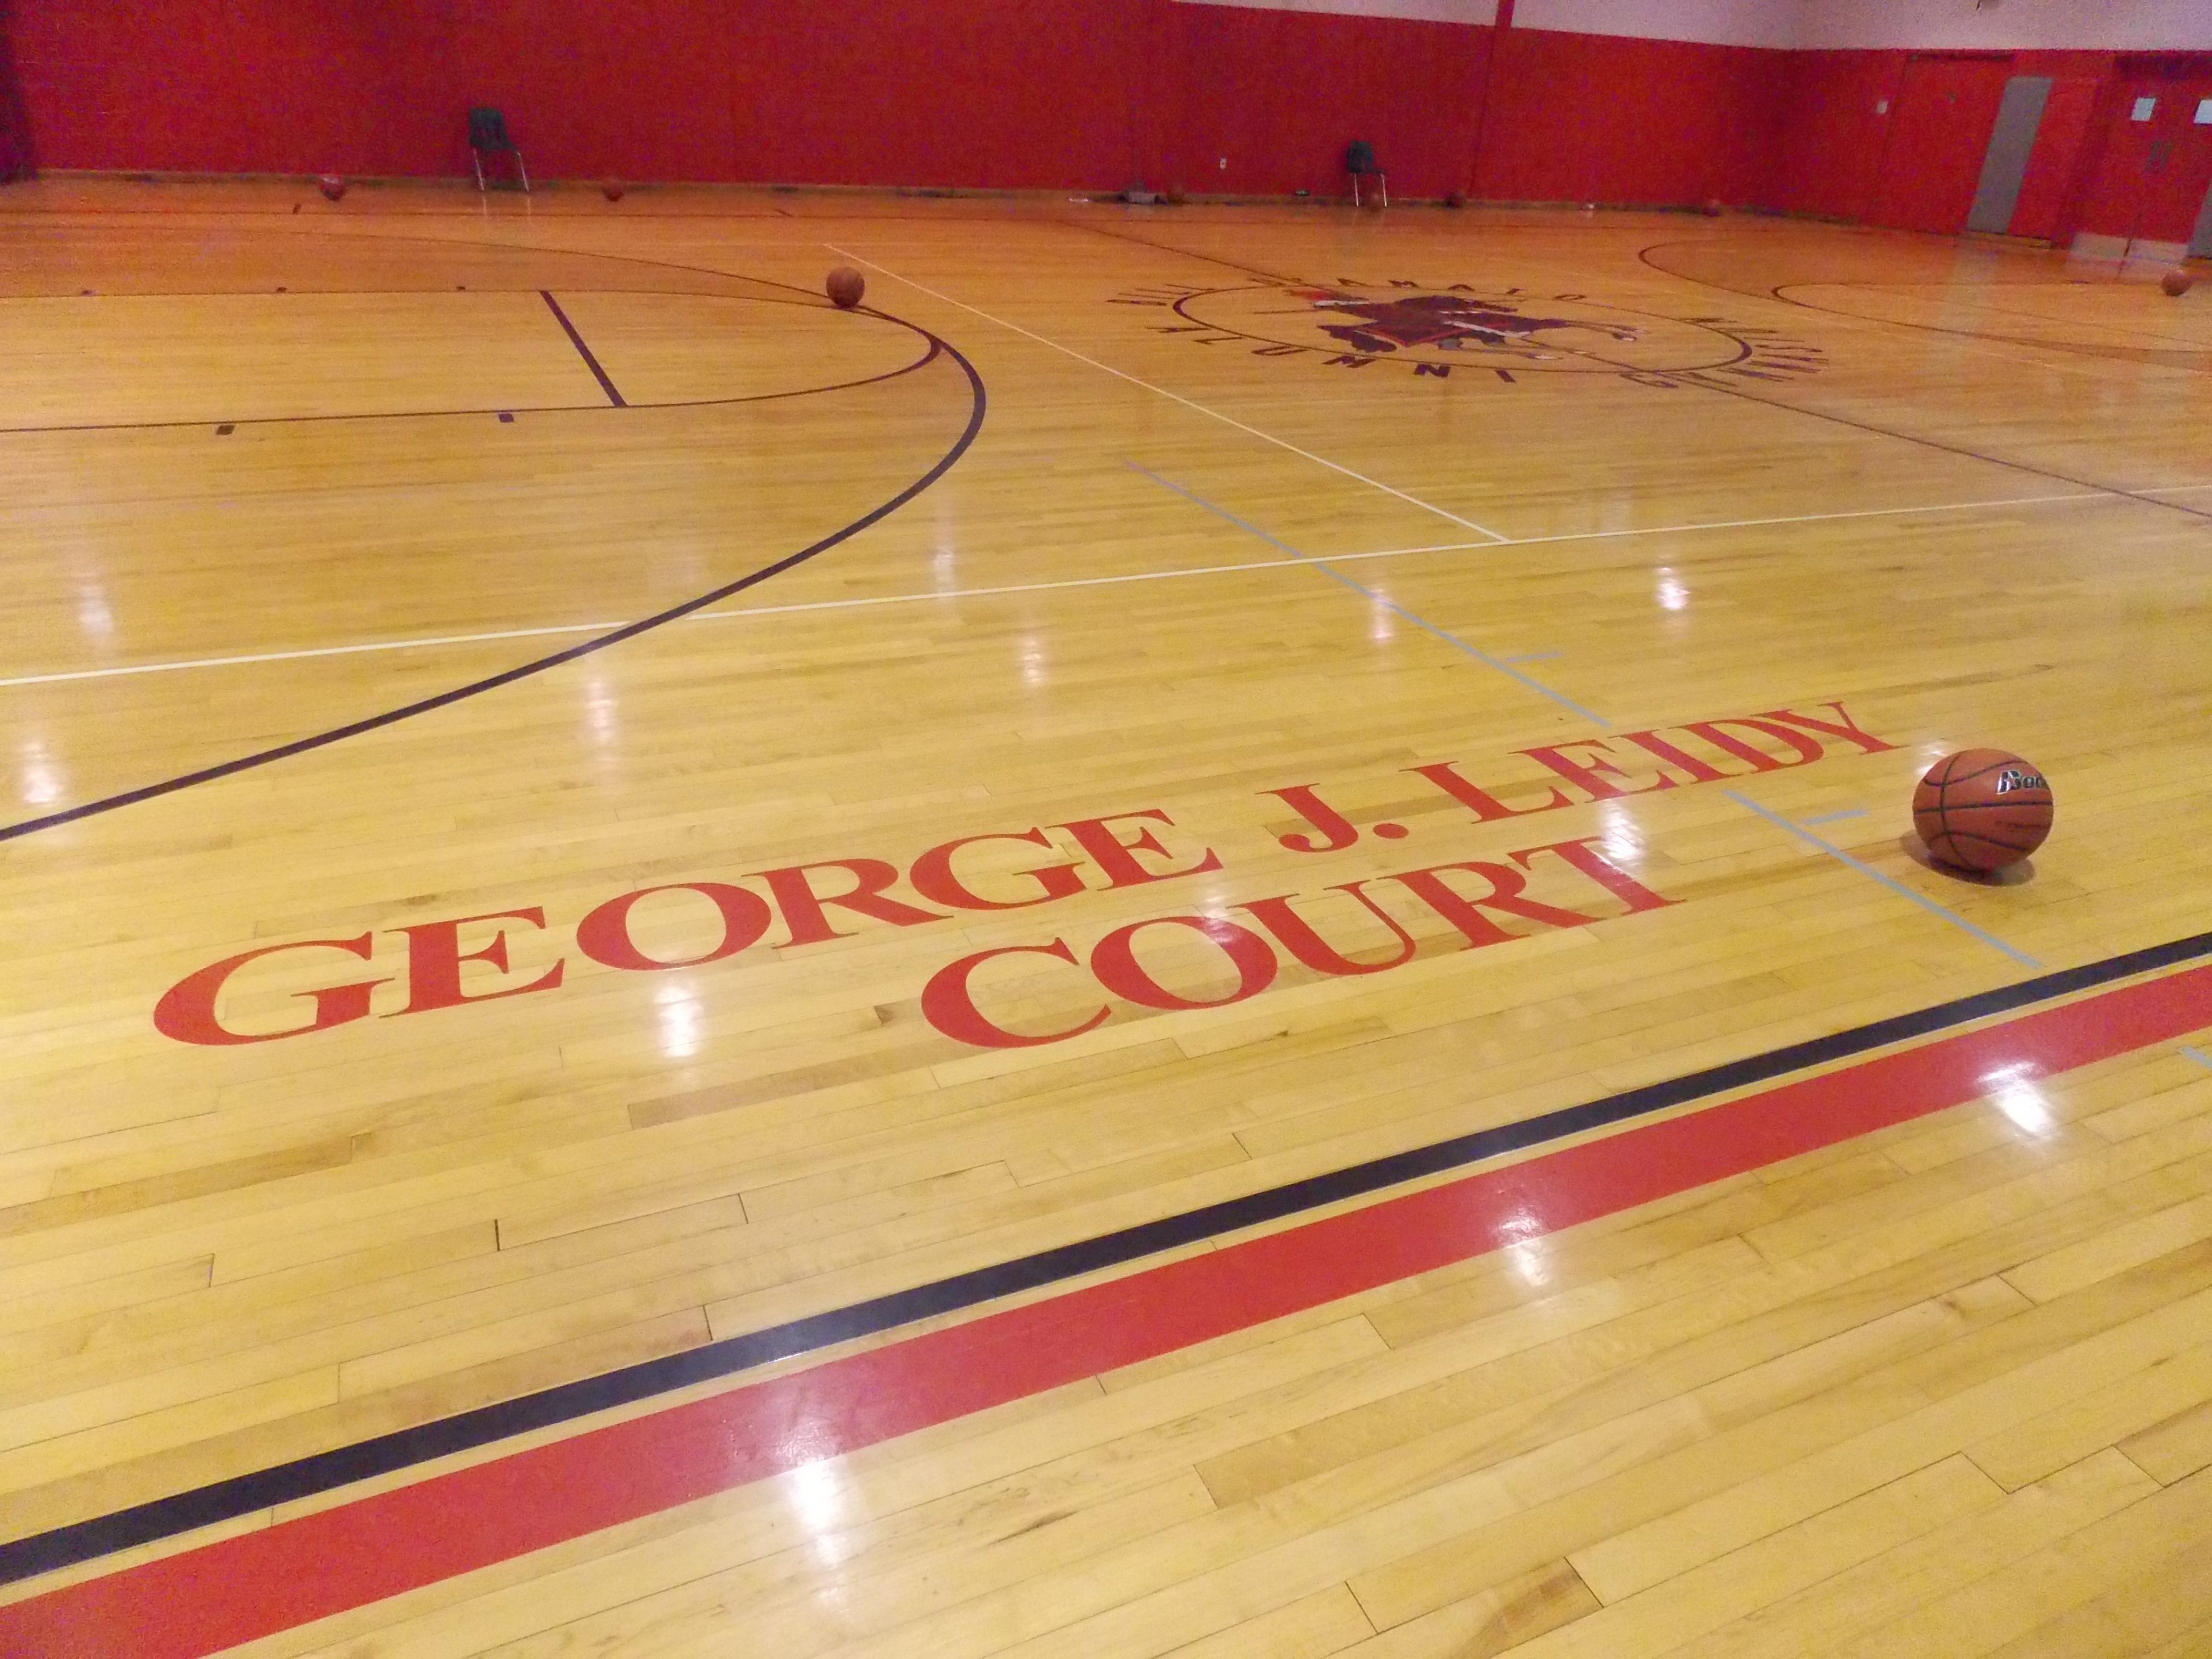 10ffbb48435 George Leidy, longtime coach at St. Edmond's, remembered for ...